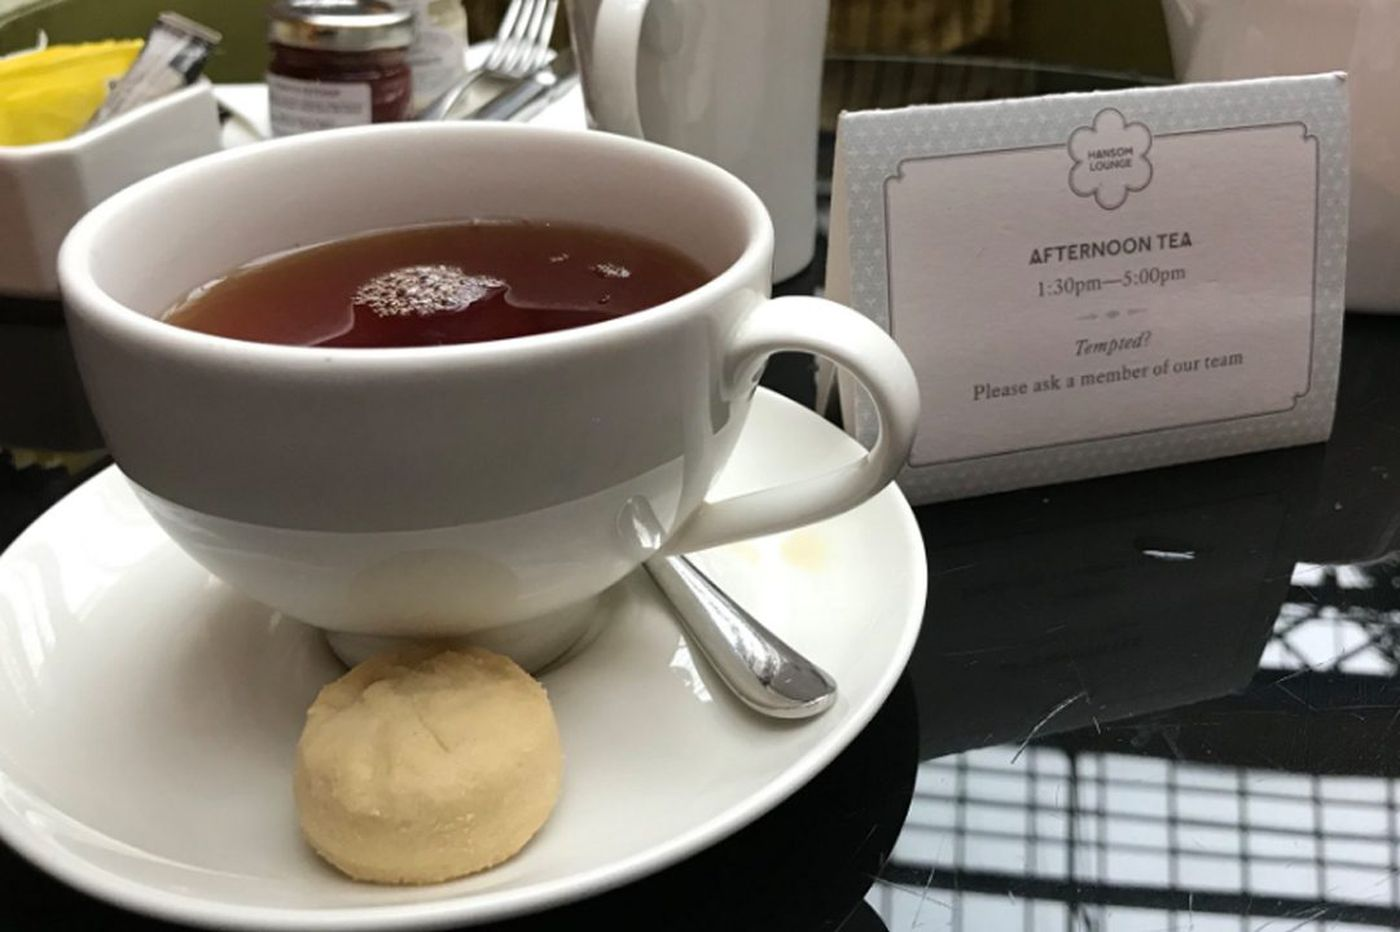 Pompey hooked on afternoon tea in London